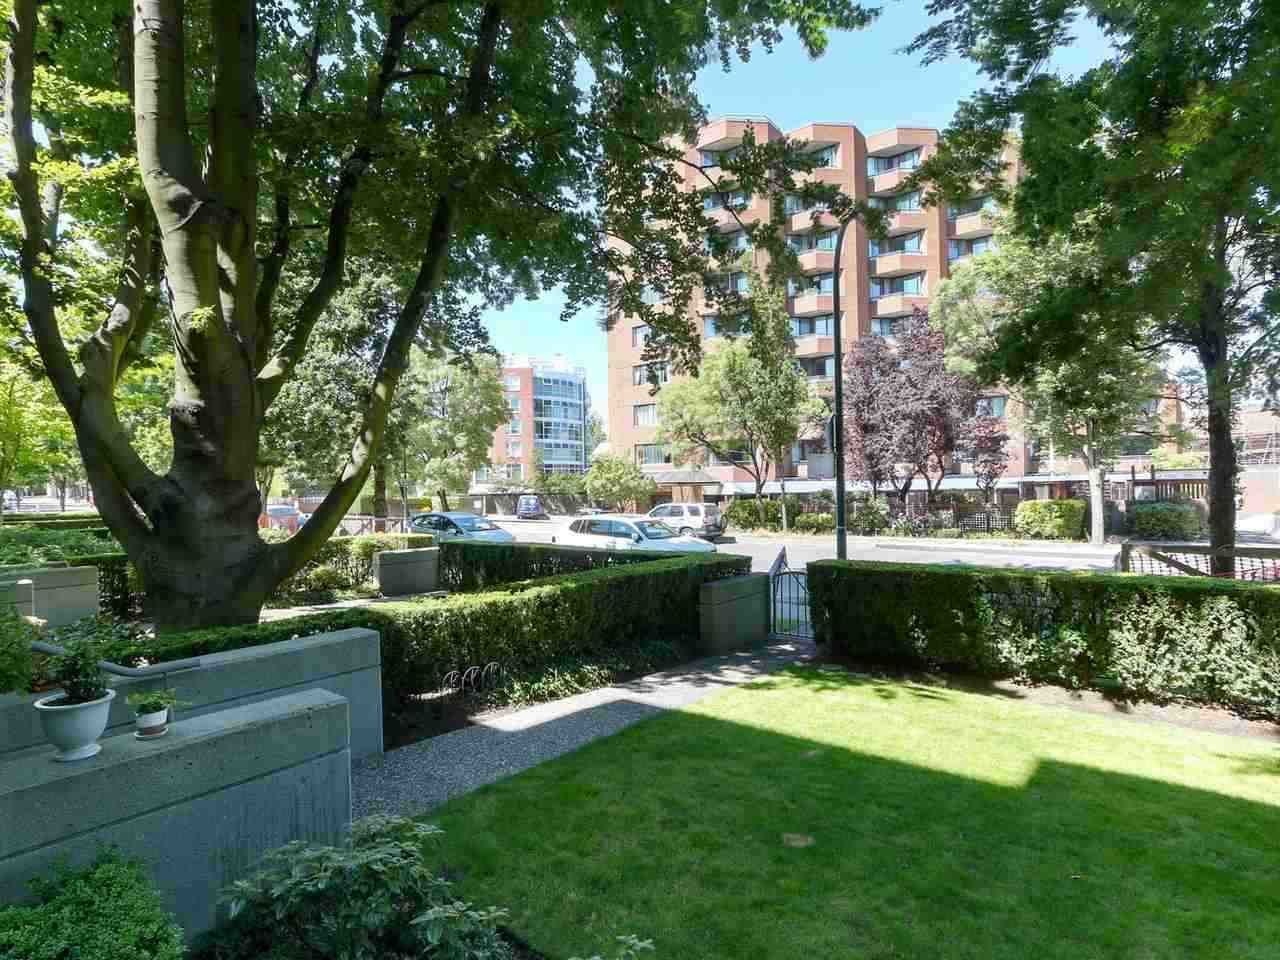 """Main Photo: 203 618 W 45TH Avenue in Vancouver: Oakridge VW Townhouse for sale in """"THE CONSERVATORY"""" (Vancouver West)  : MLS®# R2537685"""